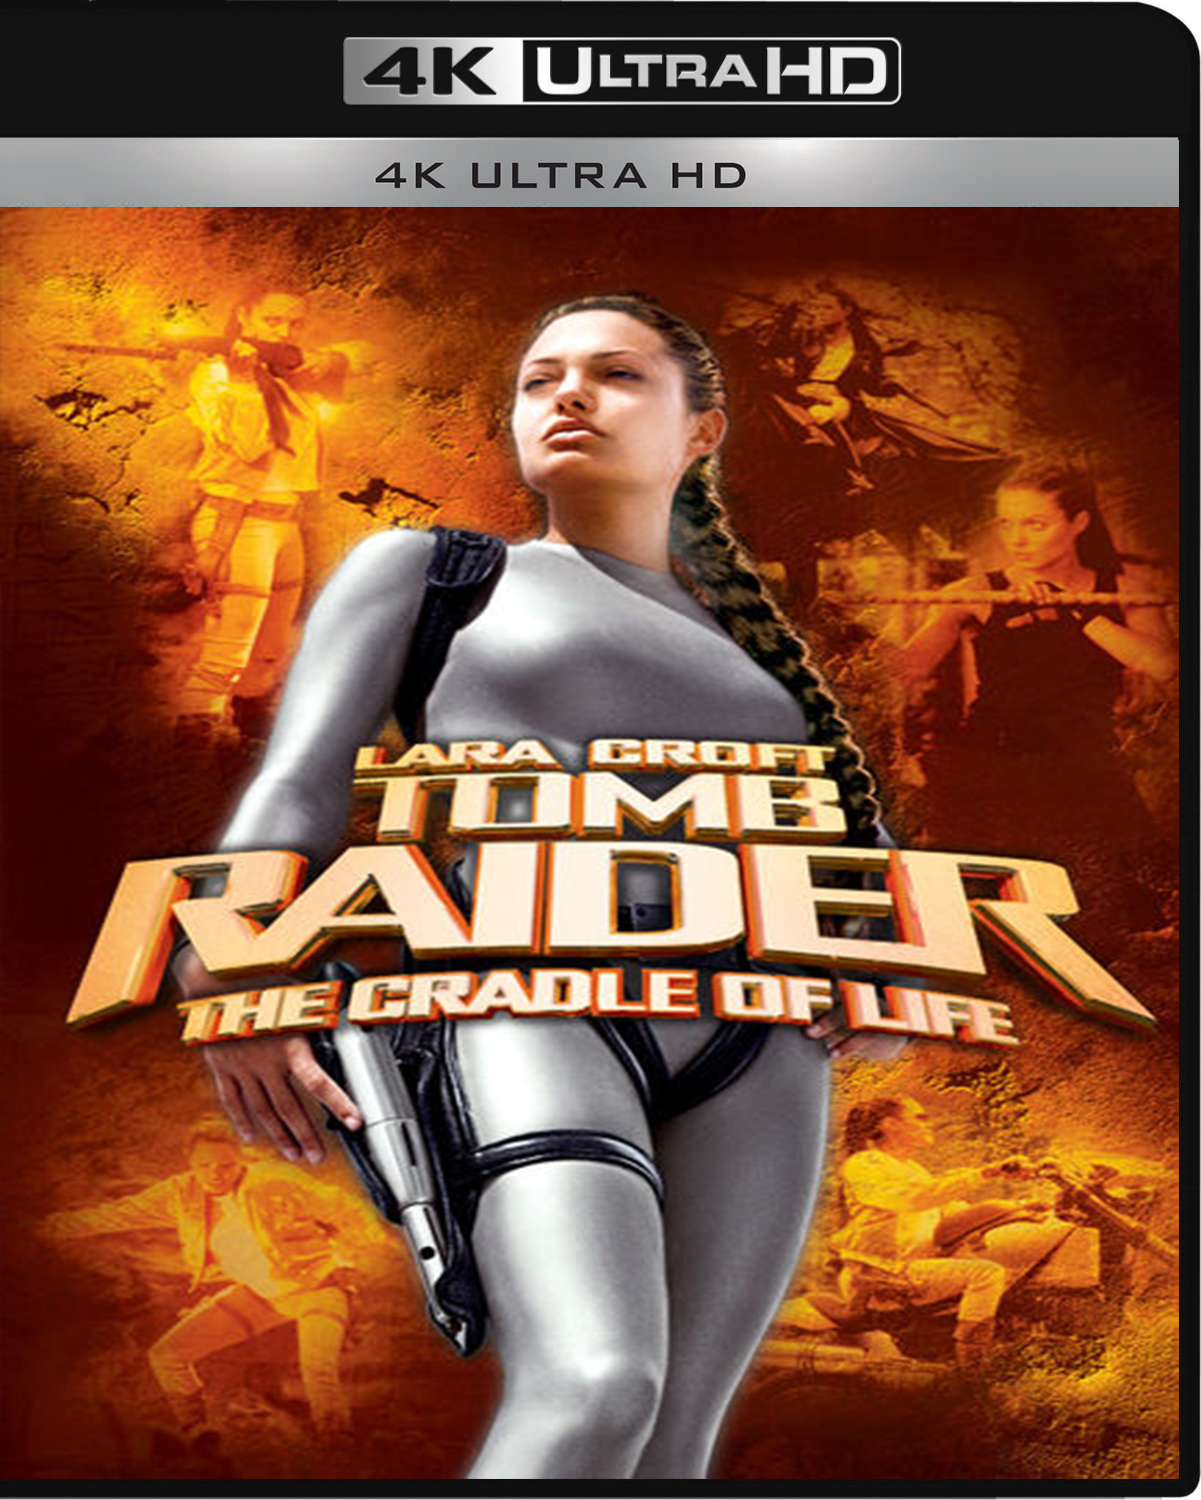 Lara Croft Tomb Raider: The Cradle of Life [2003] [UHD] [2160p] [Latino]